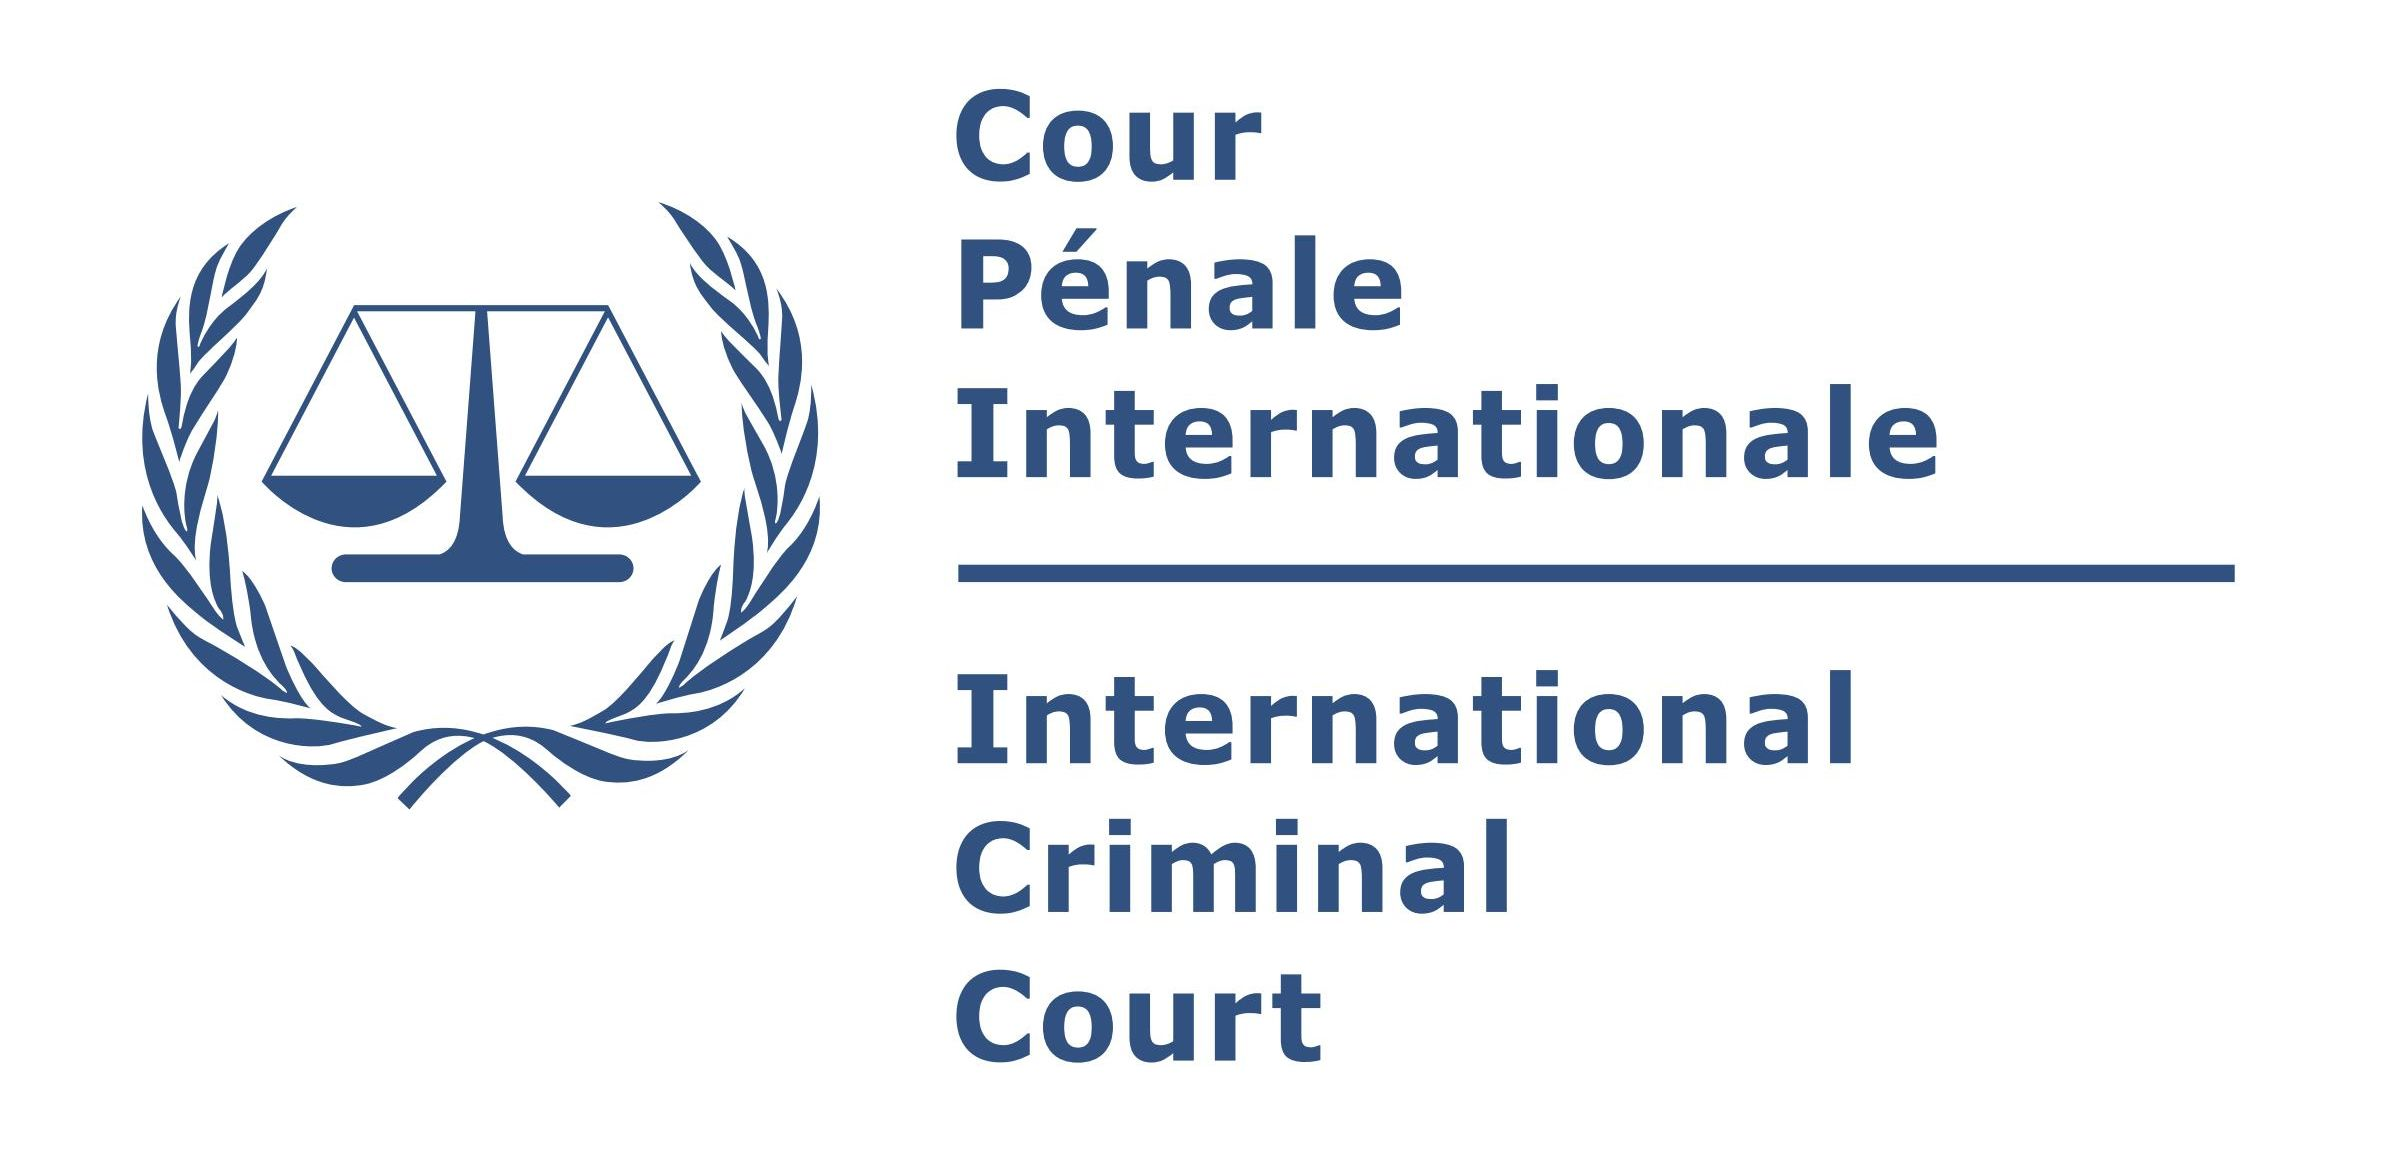 the international criminal court Emphasizing that the international criminal court established under this statute shall be complementary to national criminal jurisdictions,.